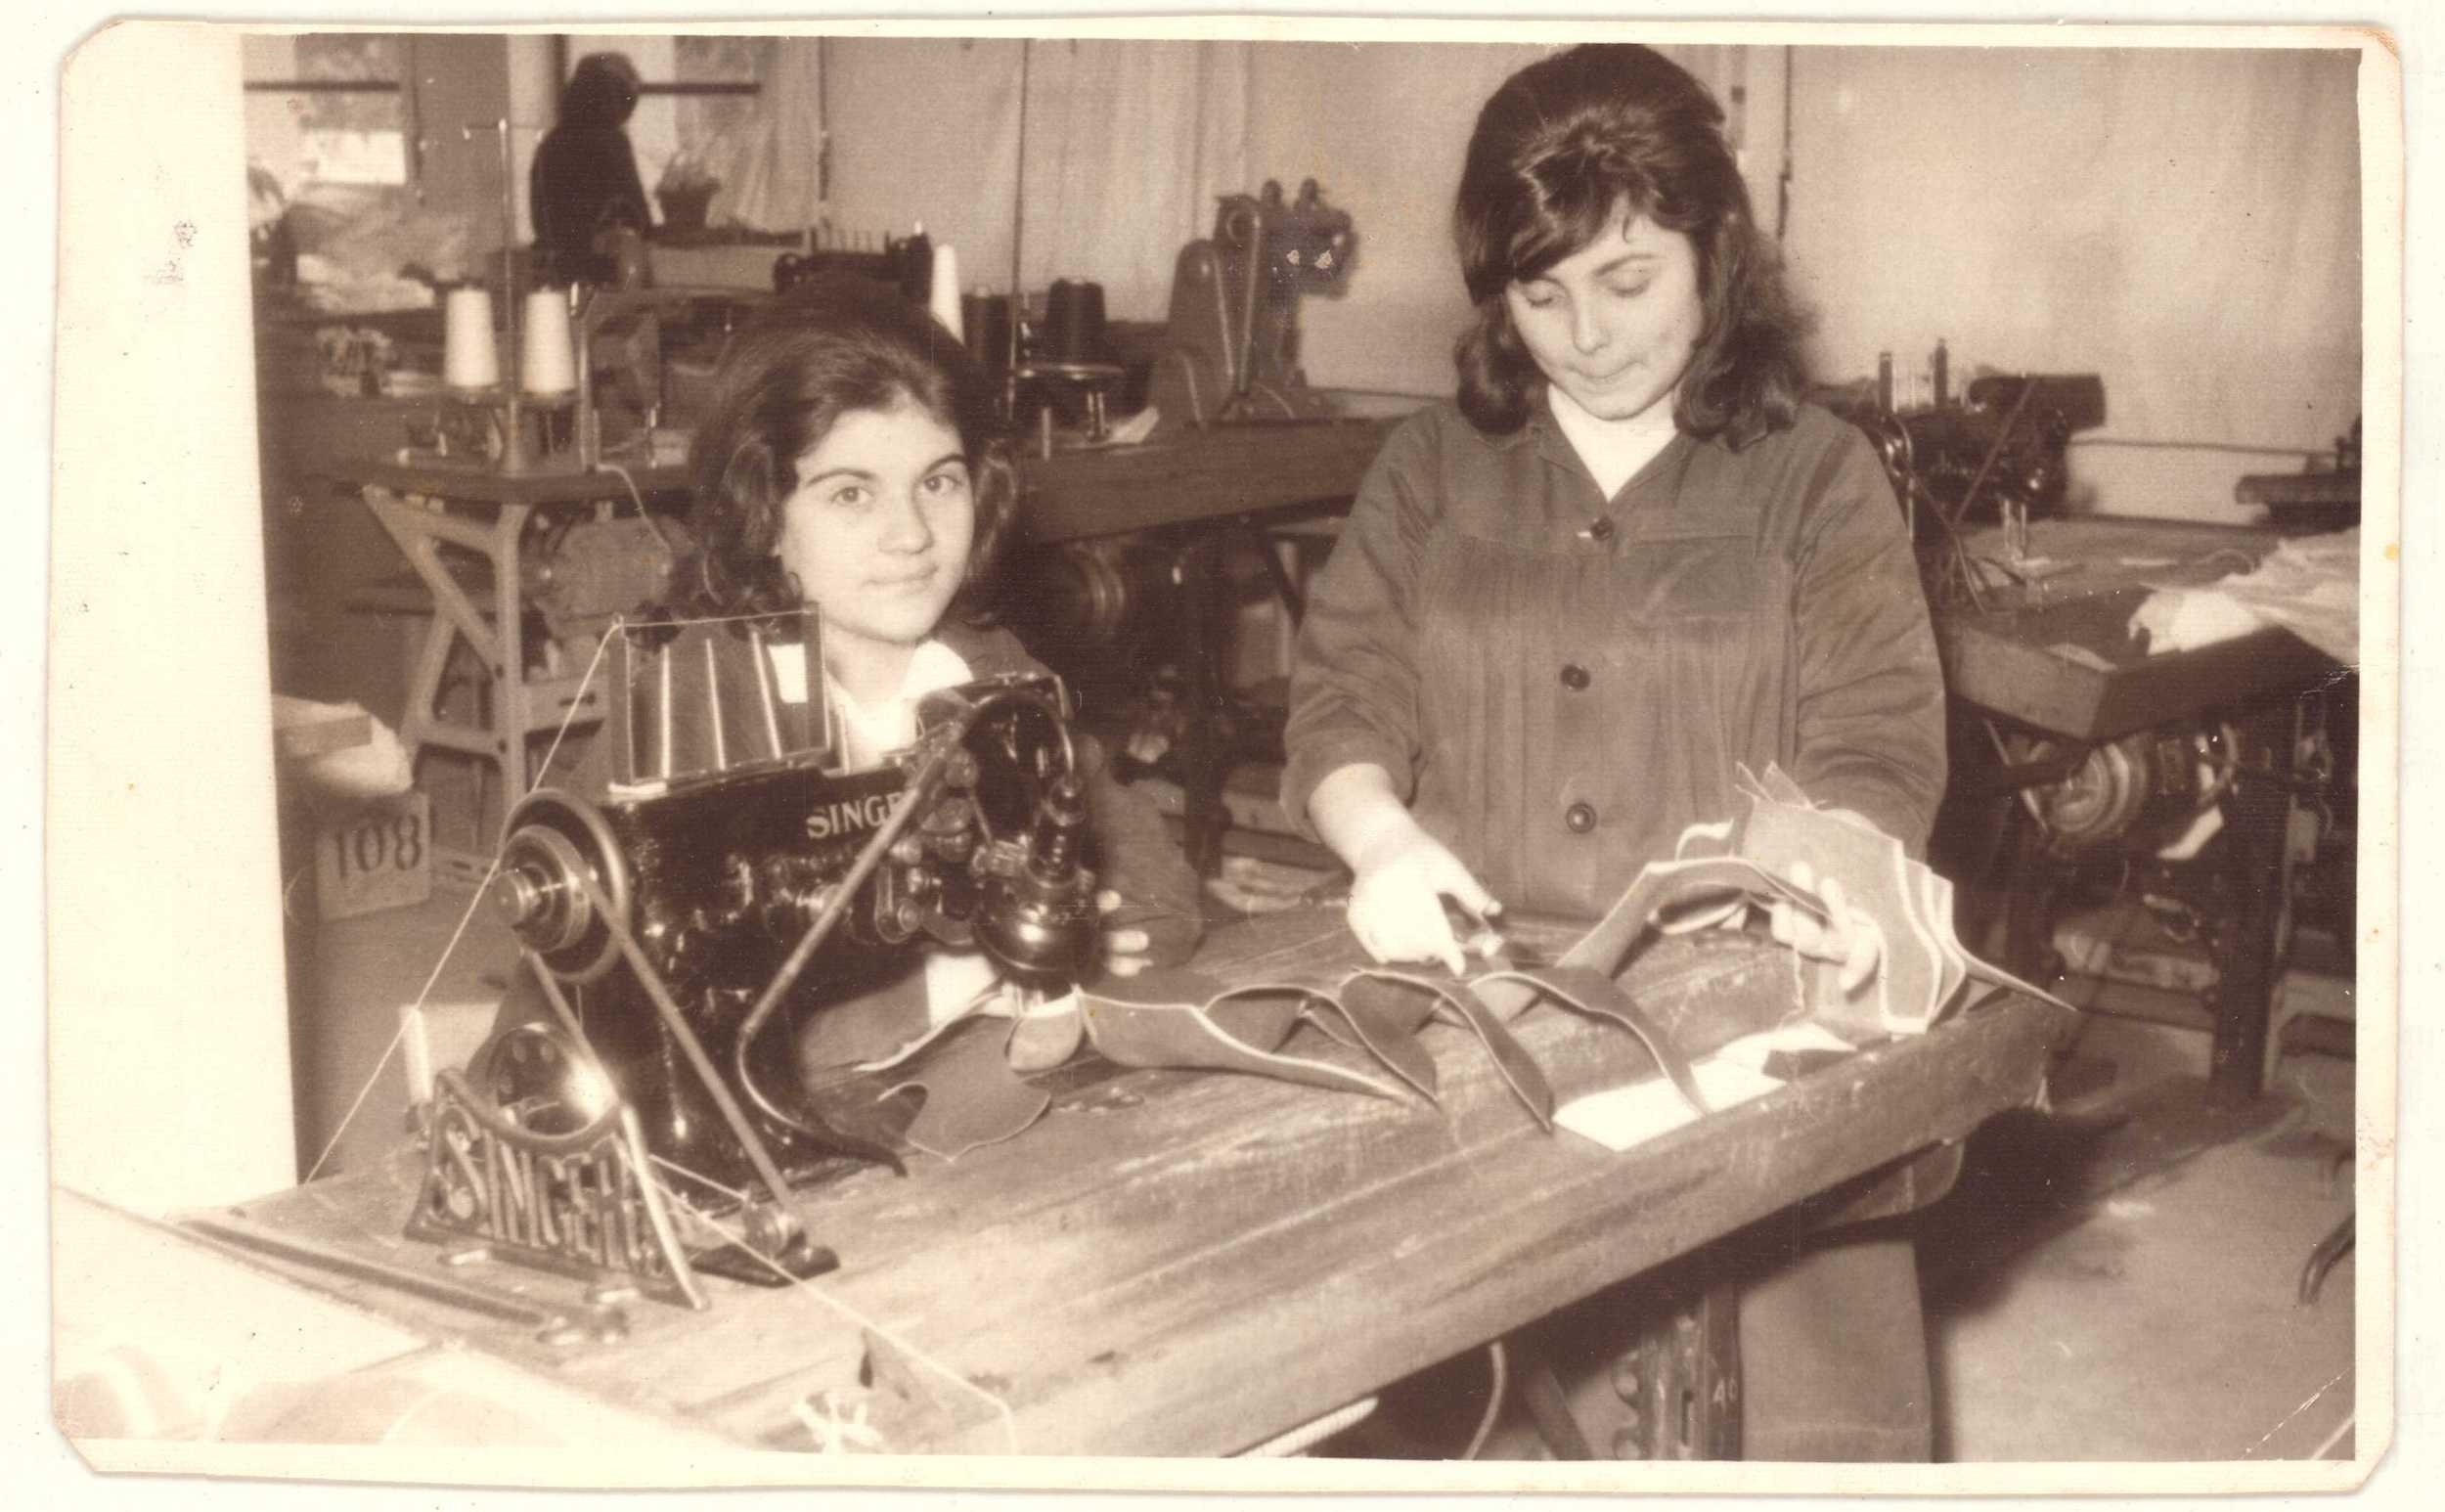 An old photo shows two women workers during their shift in Sümerbank Beykoz Leather and Shoe Factory from 'Kundura Memory' exhibition.